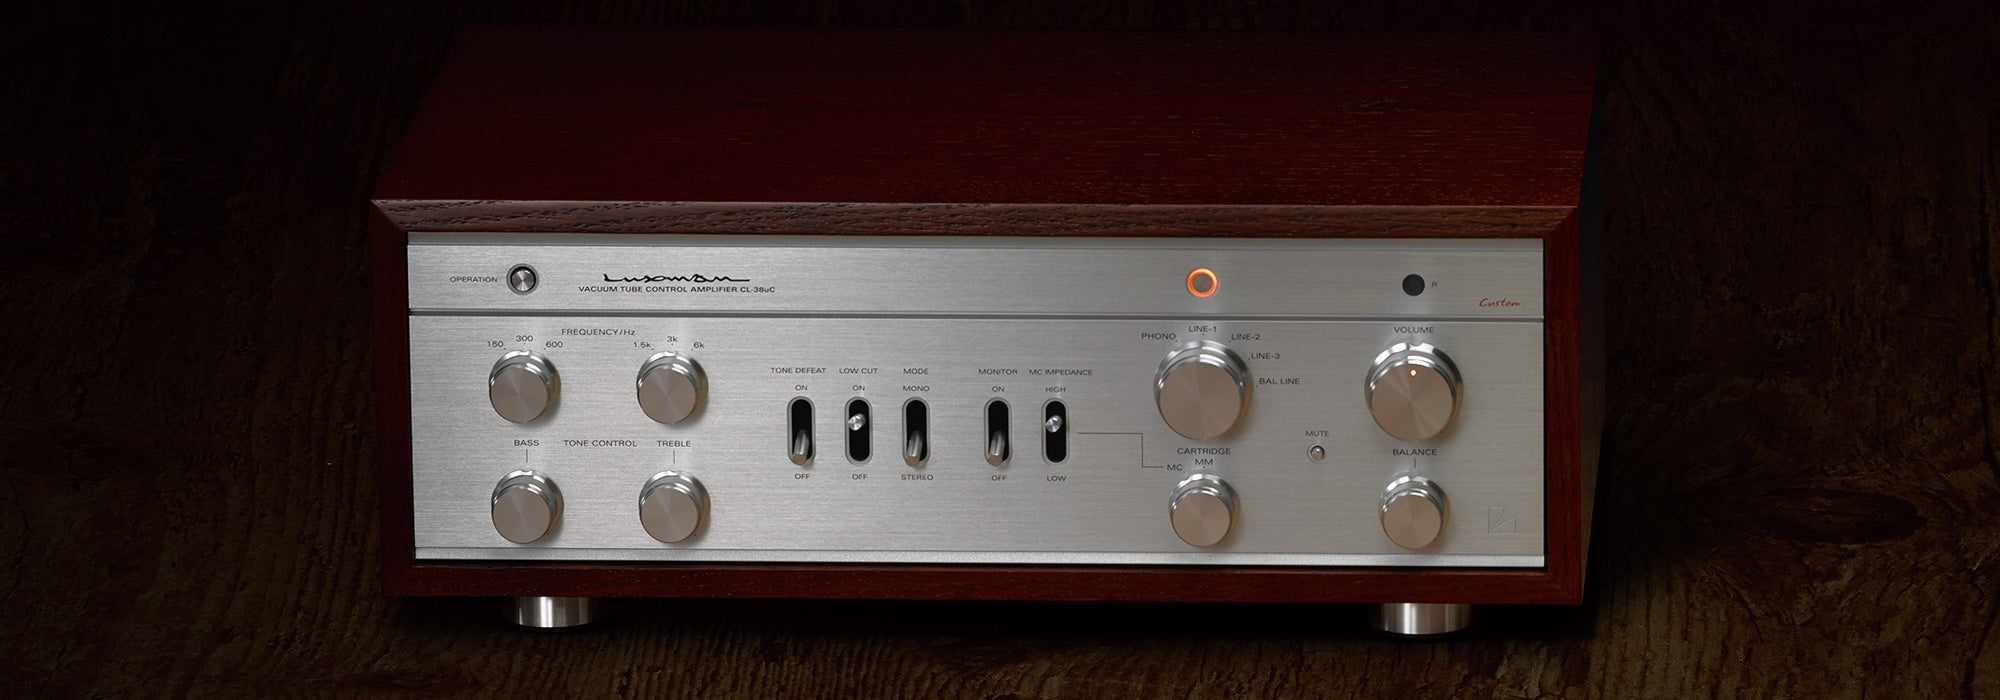 Luxman CL-38uC Vacuum Tube Amplifier